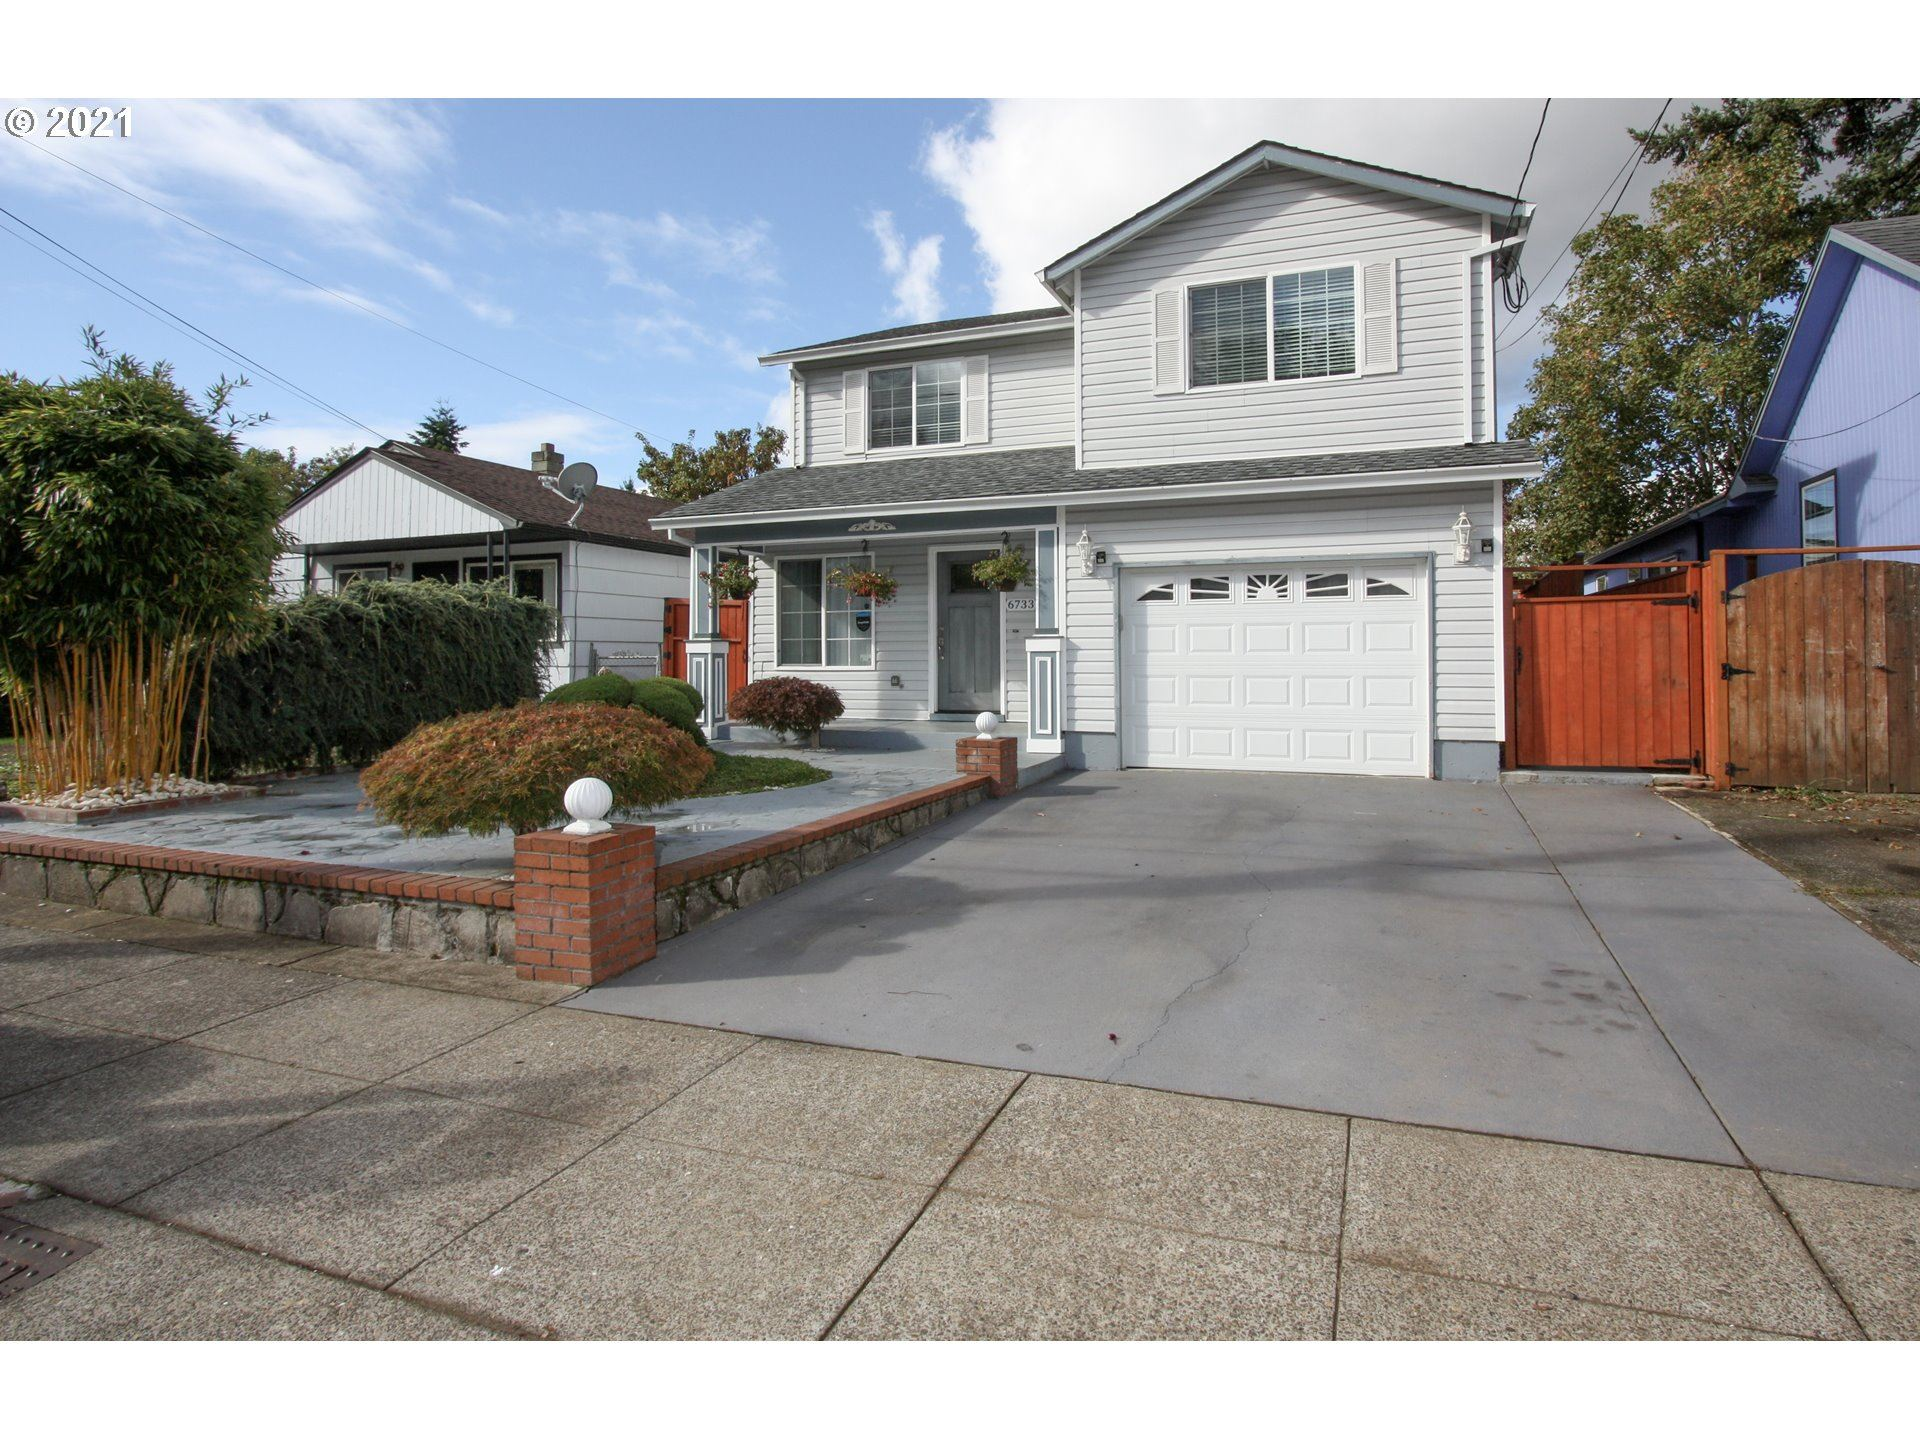 6733 SE 87TH AVE, Portland, OR 97266 - MLS#: 21134382